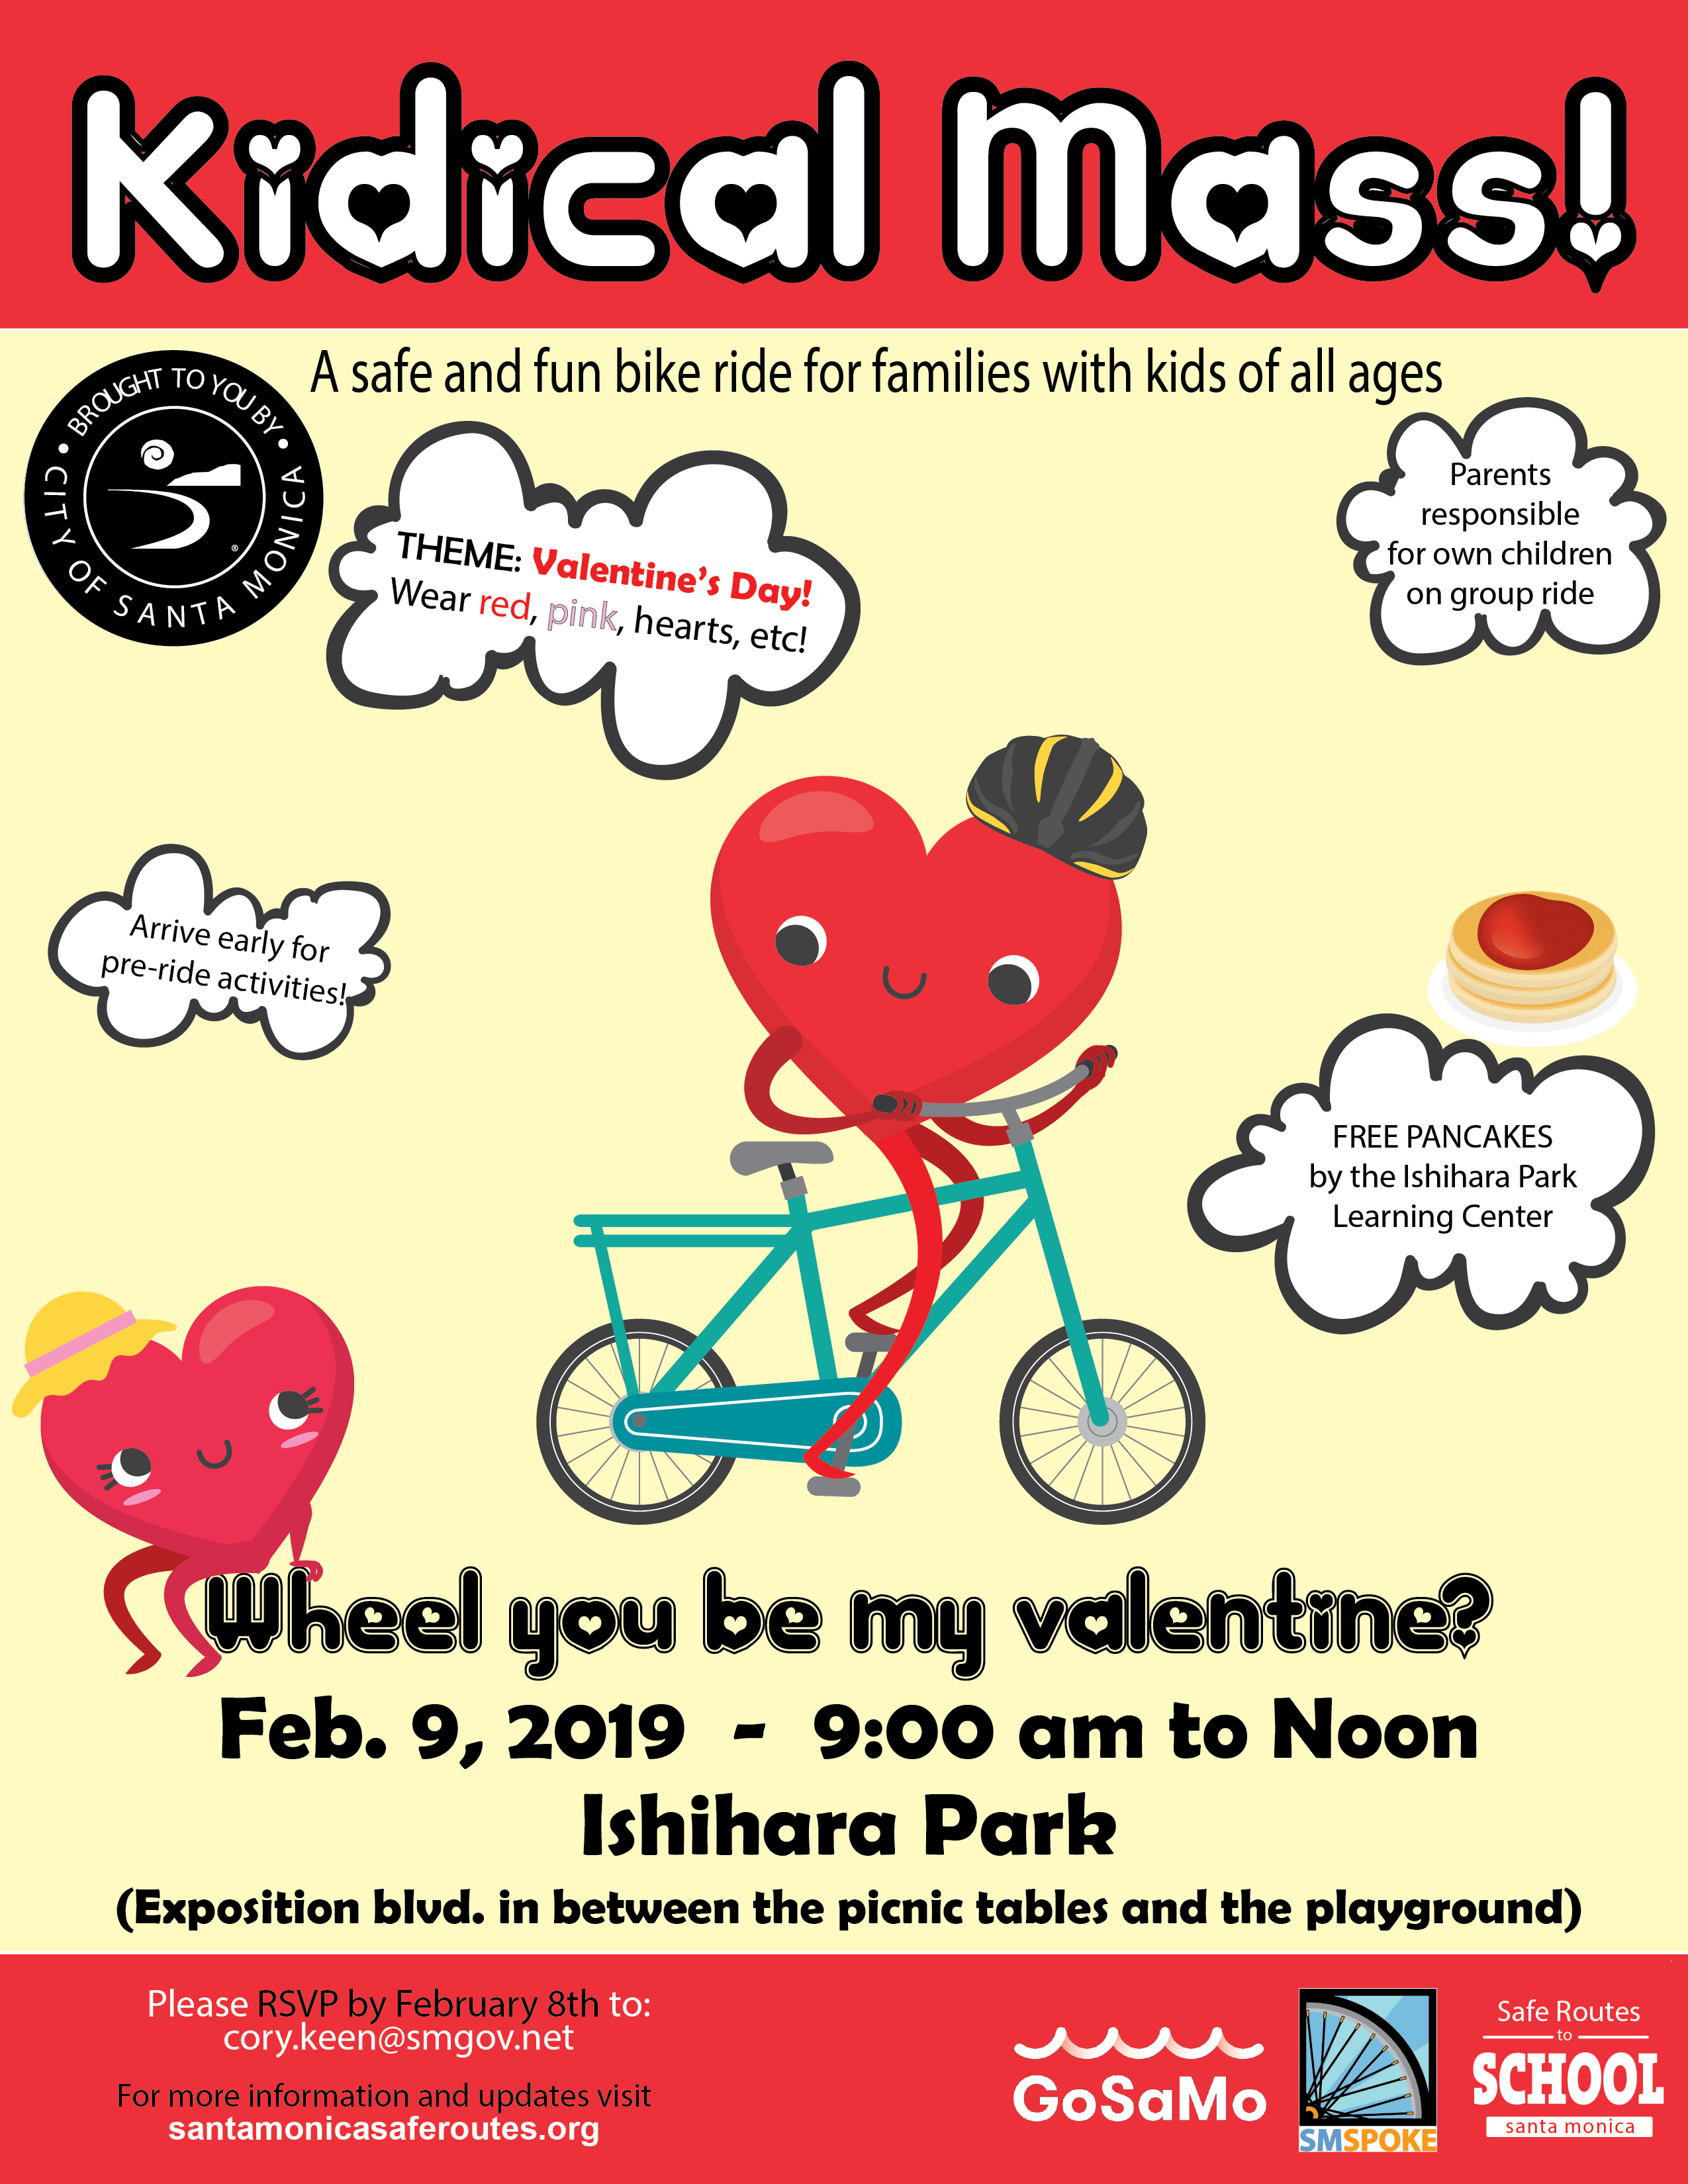 Kidical Mass Valentines Day 2019